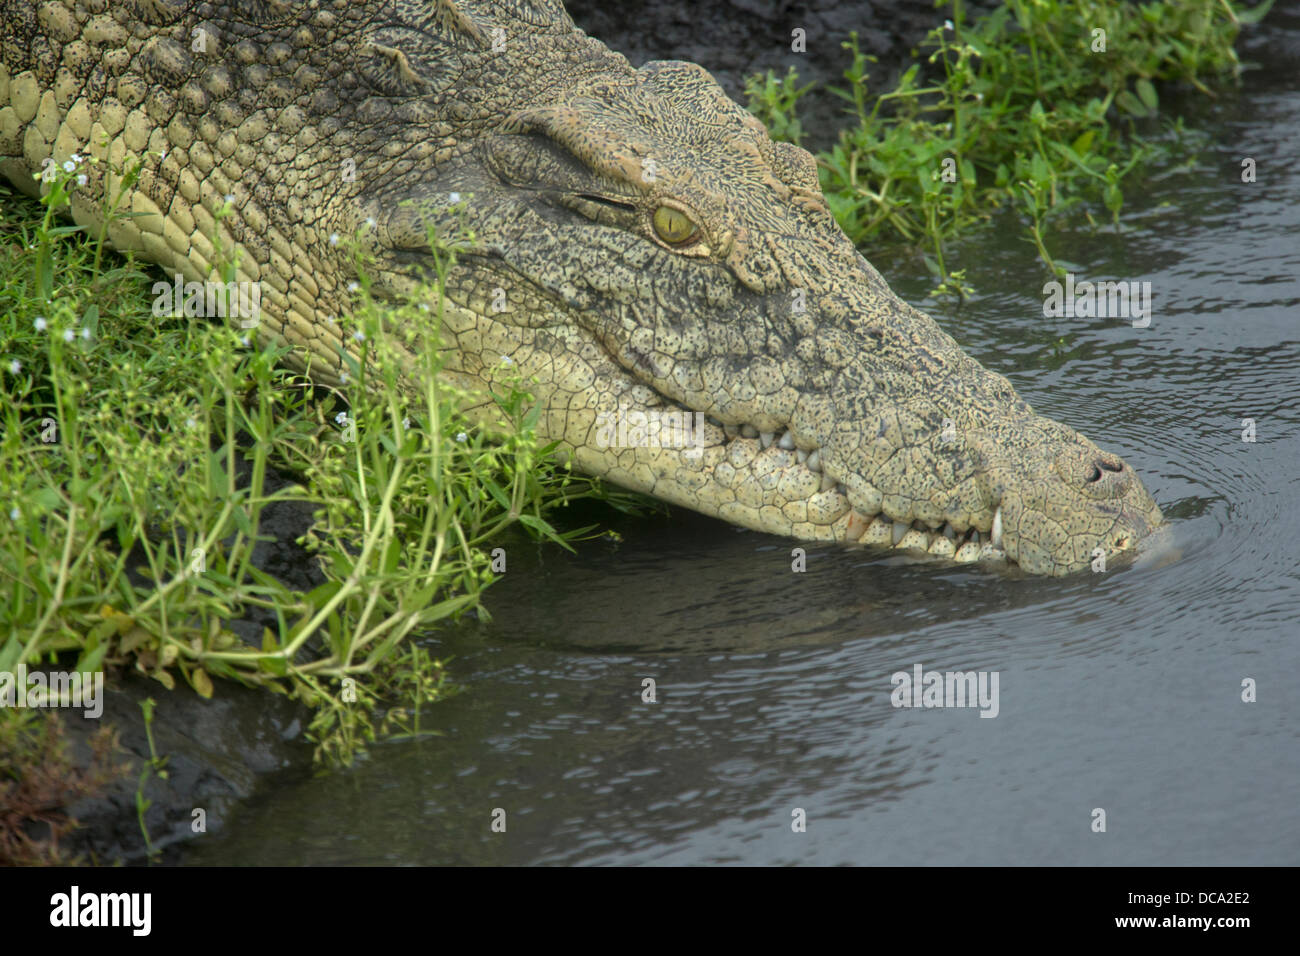 A Nile Crocodile entering the water Stock Photo